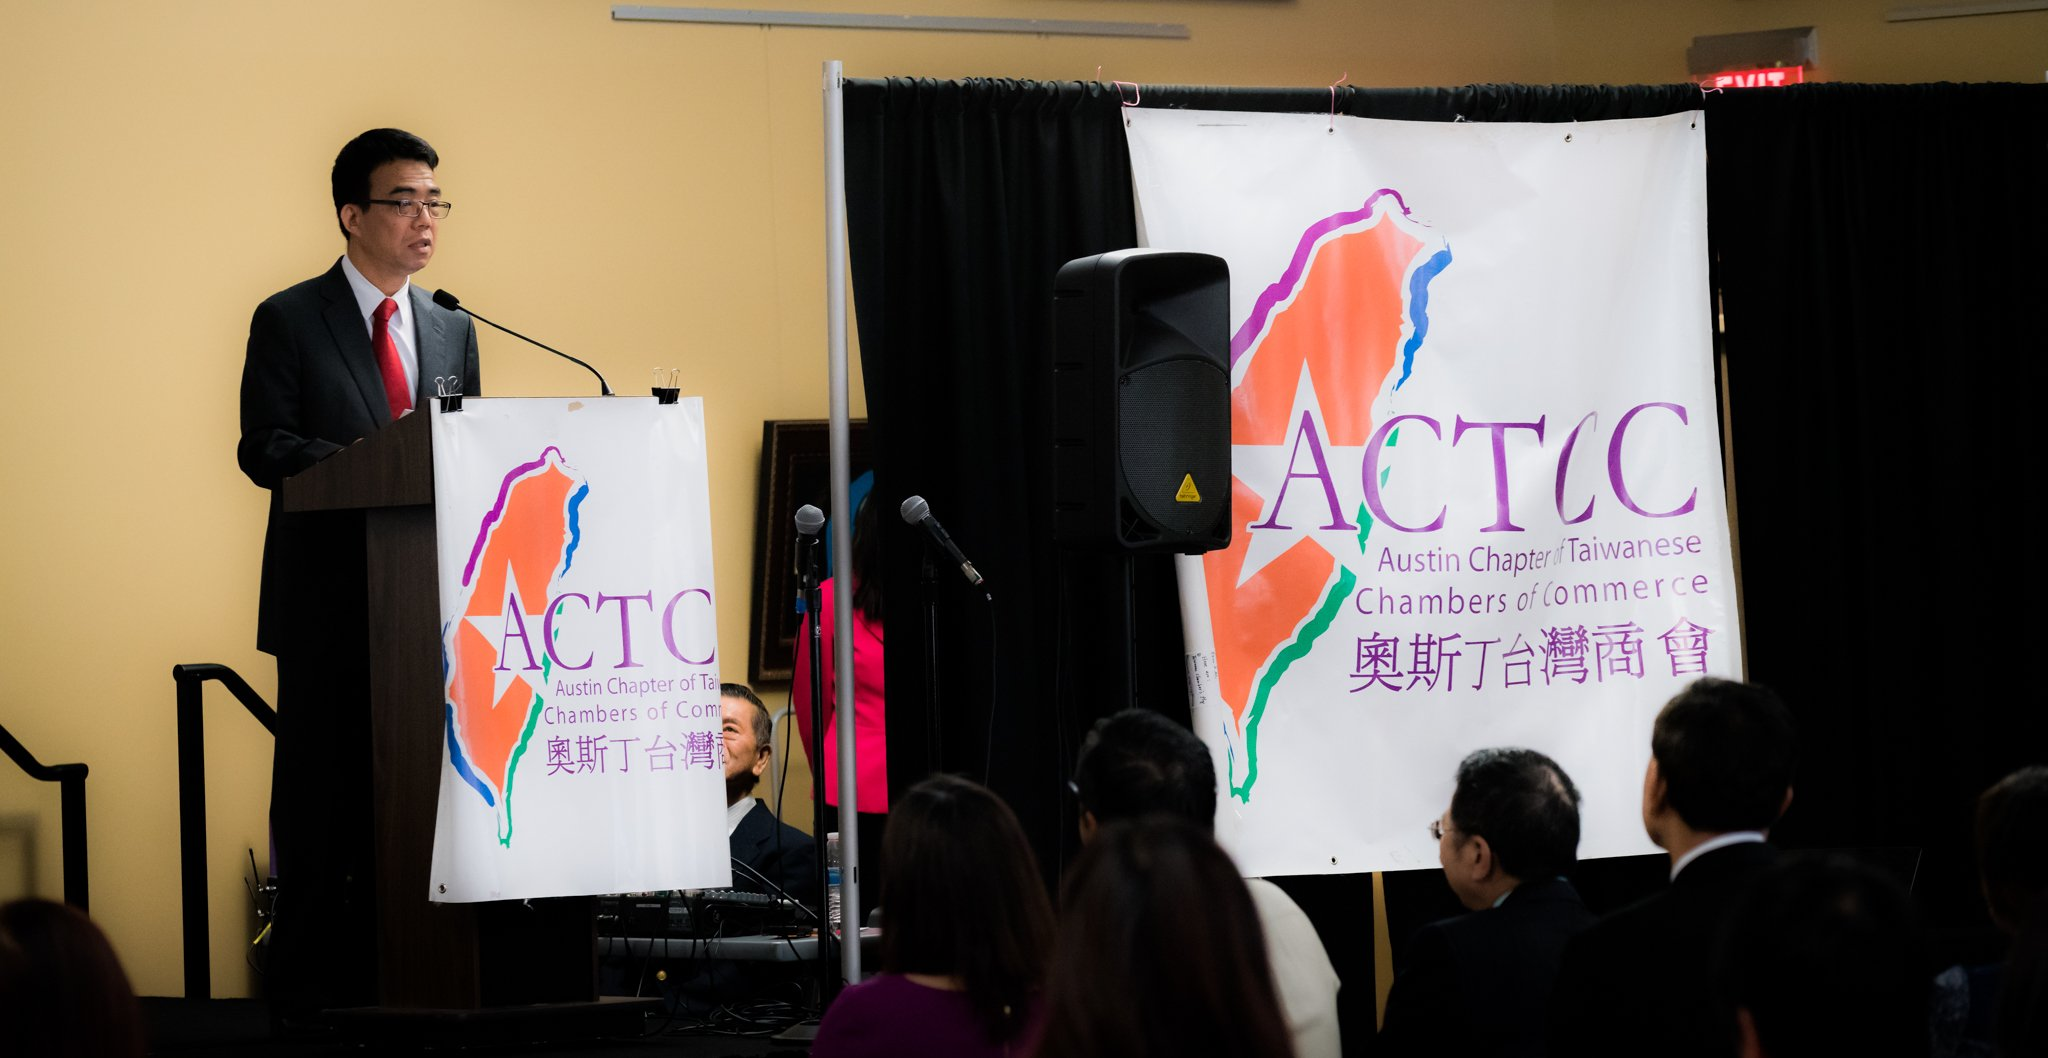 https://0201.nccdn.net/4_2/000/000/00d/f43/29OCT2016---ACTCC-TW-National-Day-Celebration-at-AARC-3.JPG